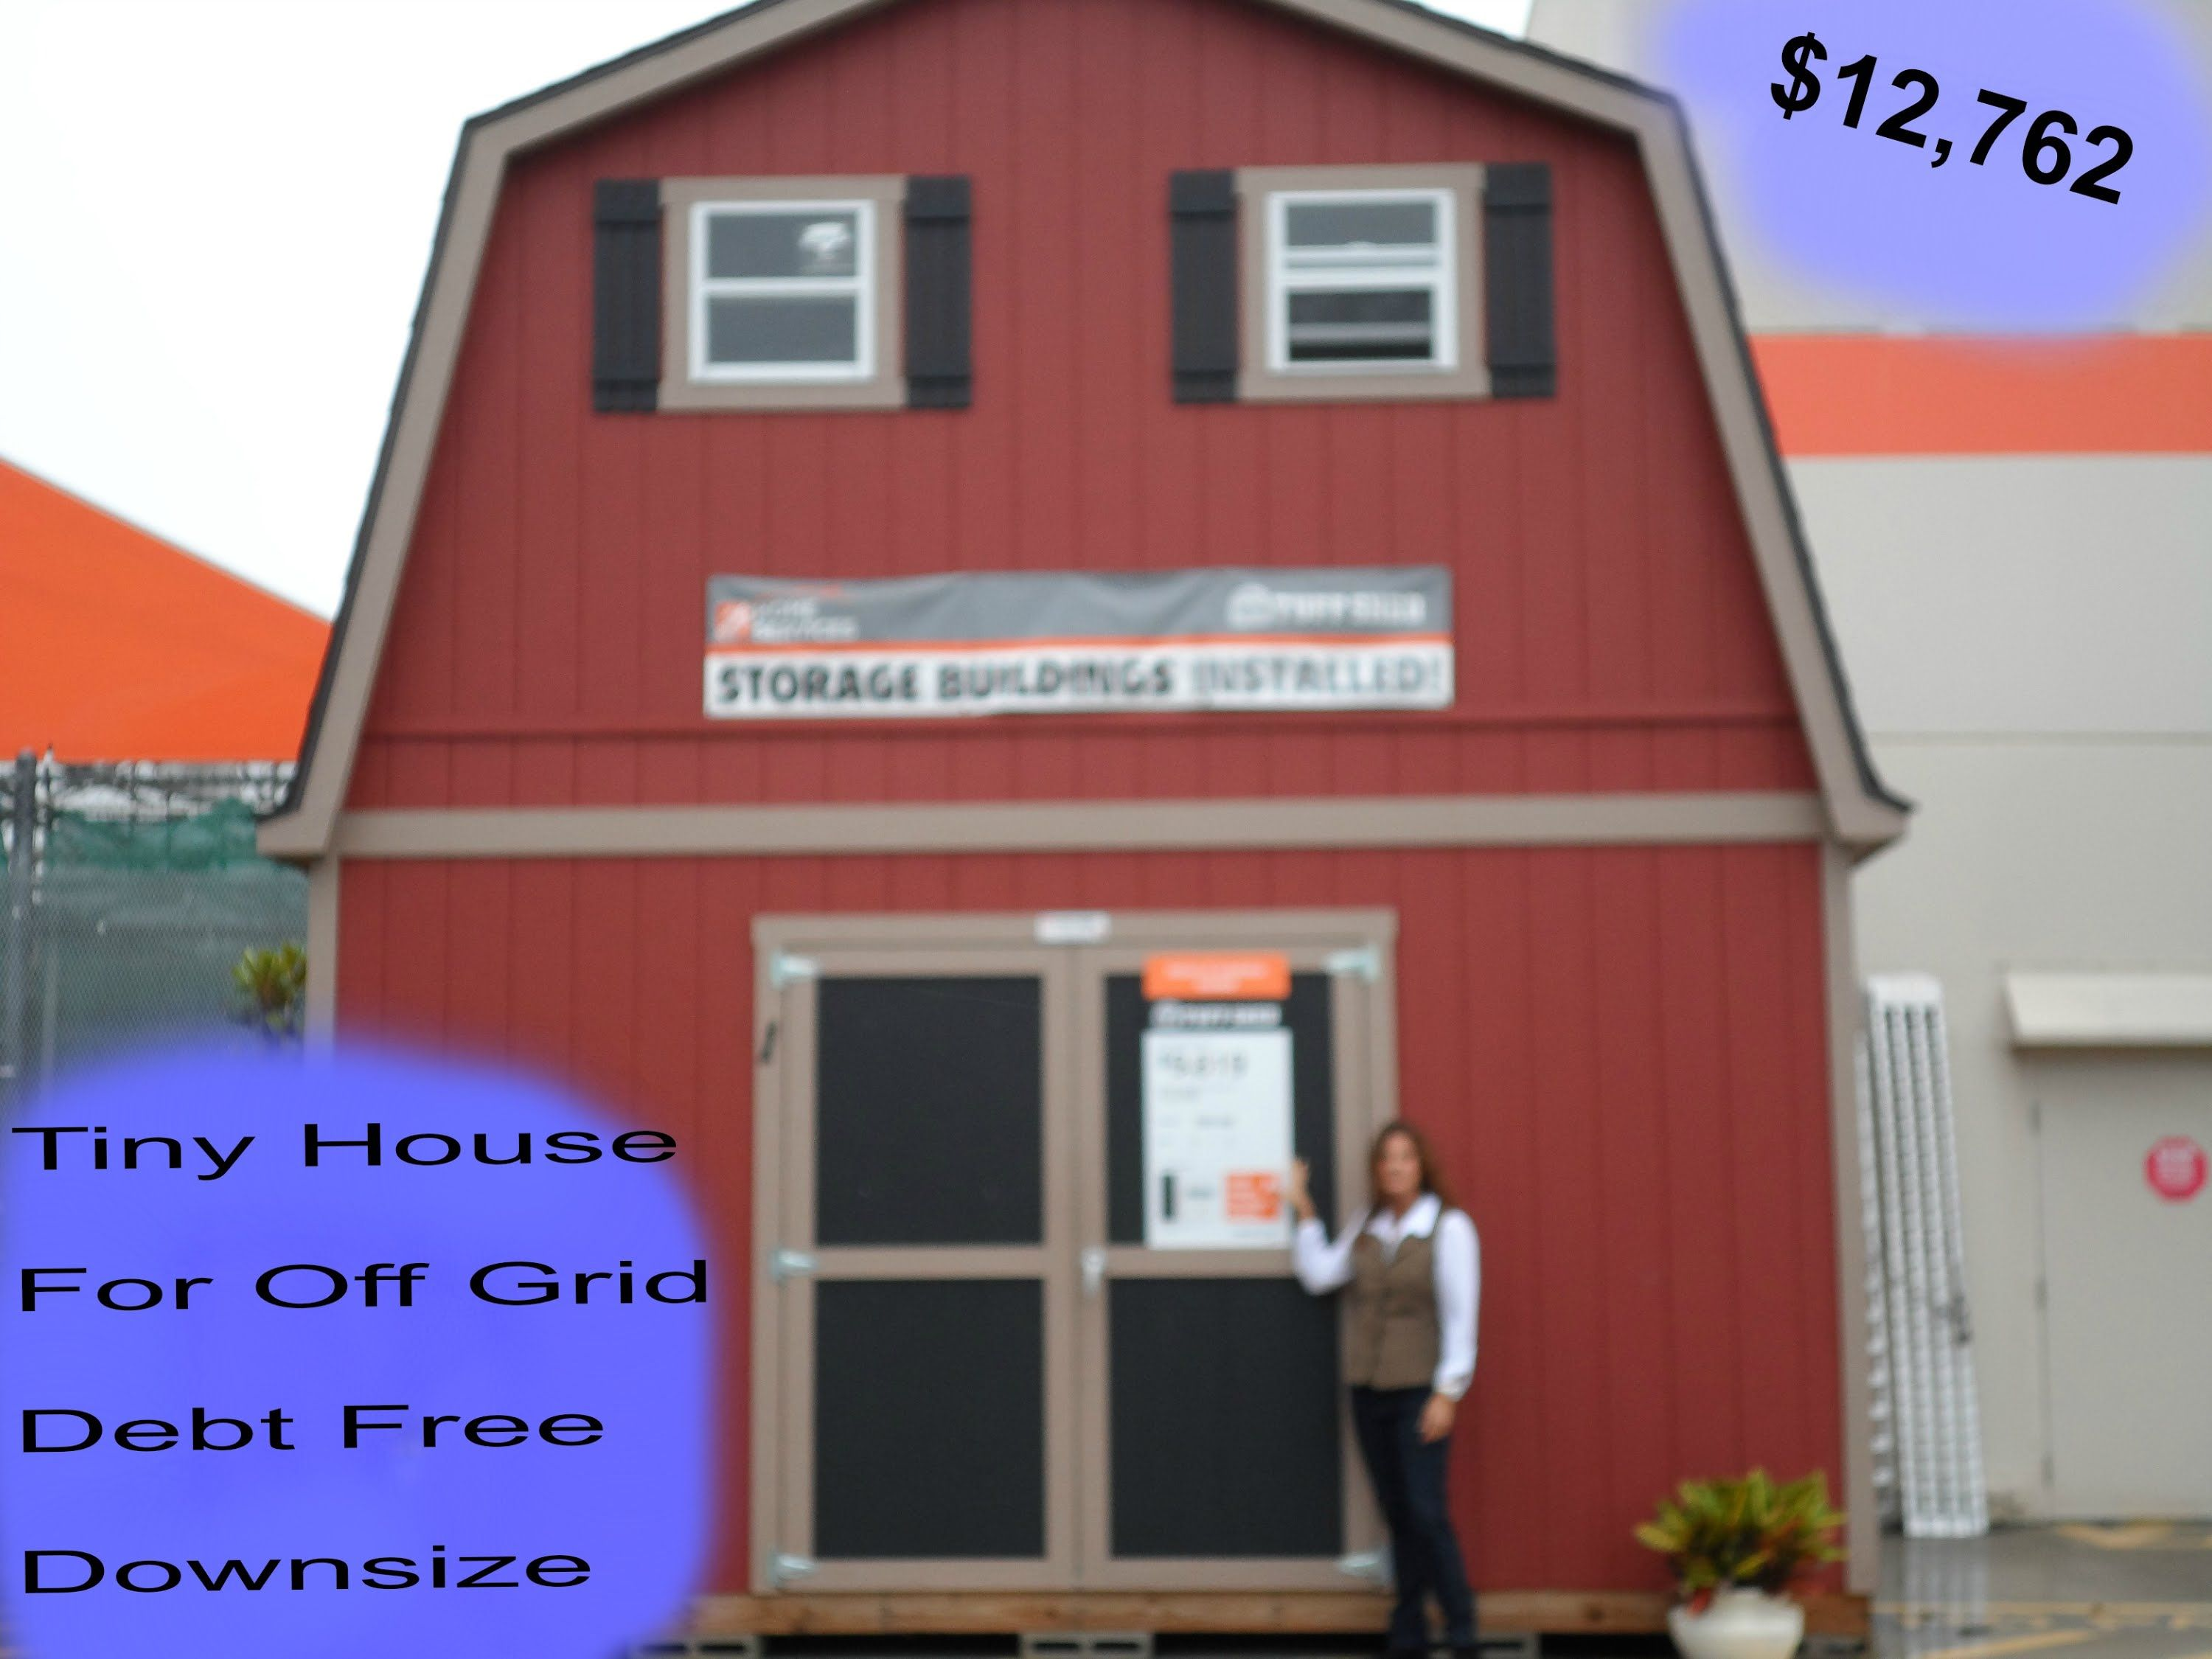 12 762 For An Installed 2 Floor Shed That Can Be Finished